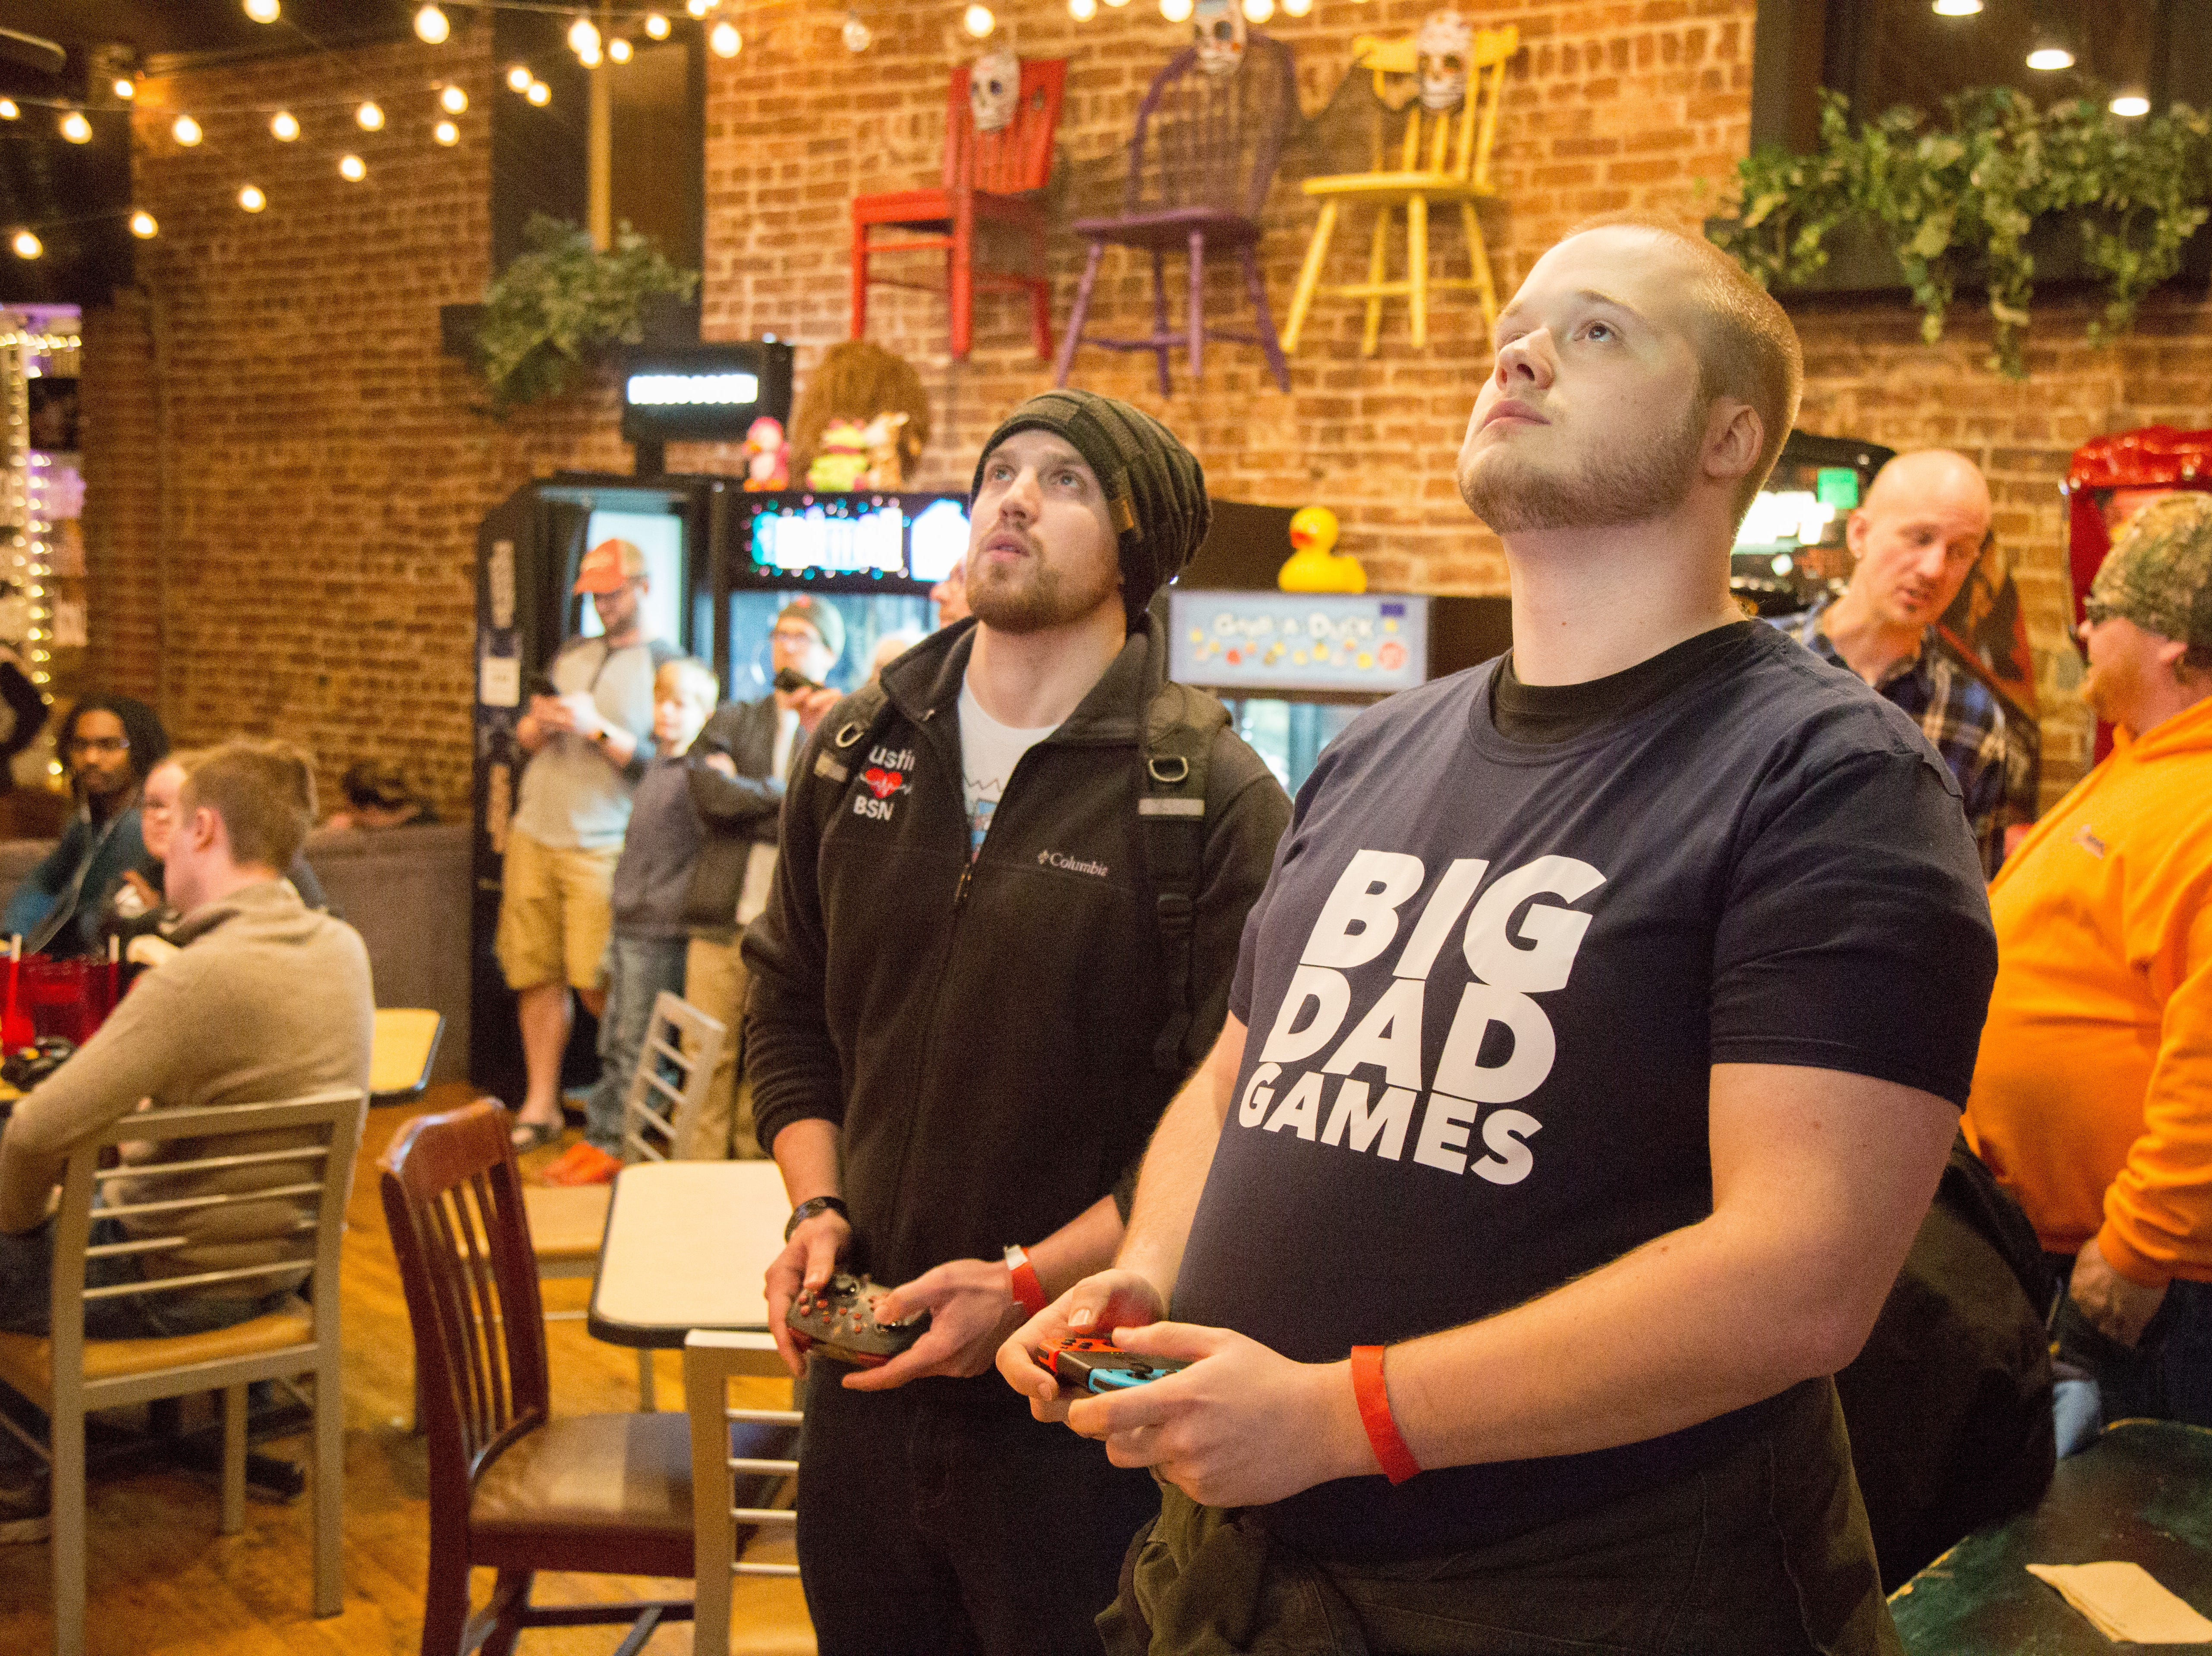 Competitors go for the win during a Super Smash Brothers Ultimate Tournament presented by Big Dad Games at Filly's Game and Grill in Gallatin on Monday, Jan 14.